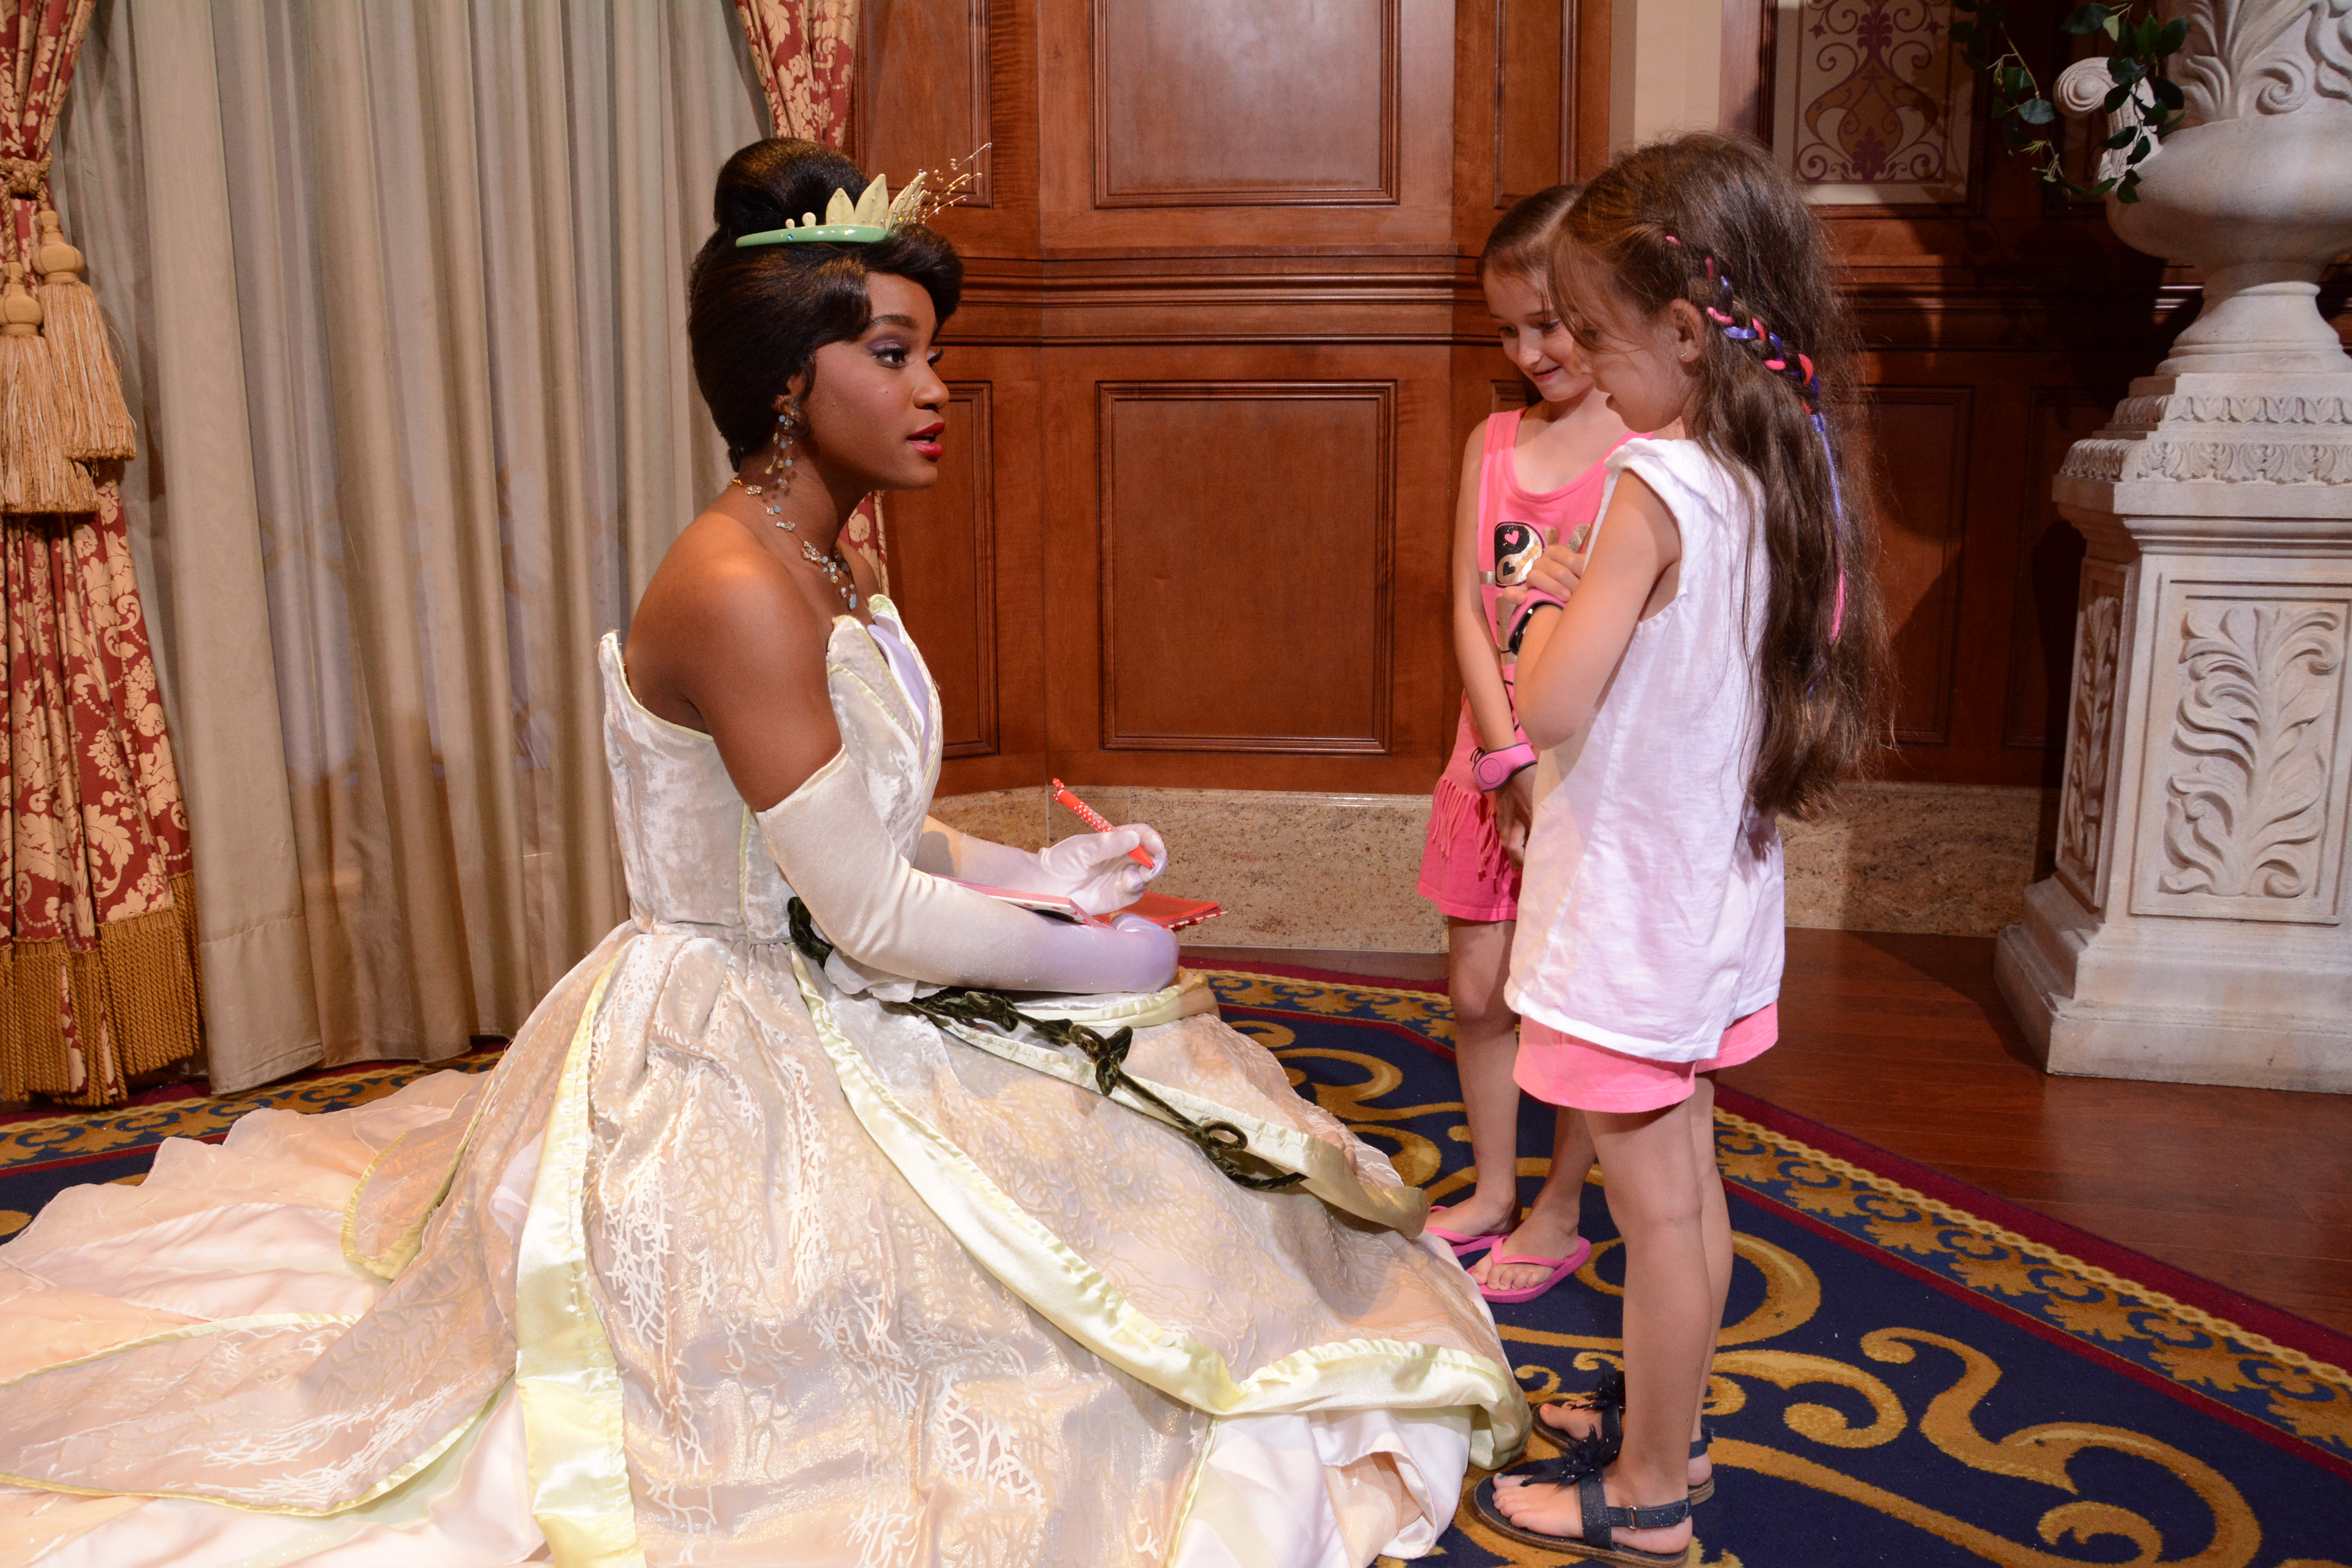 Tiana at Disney World with girls